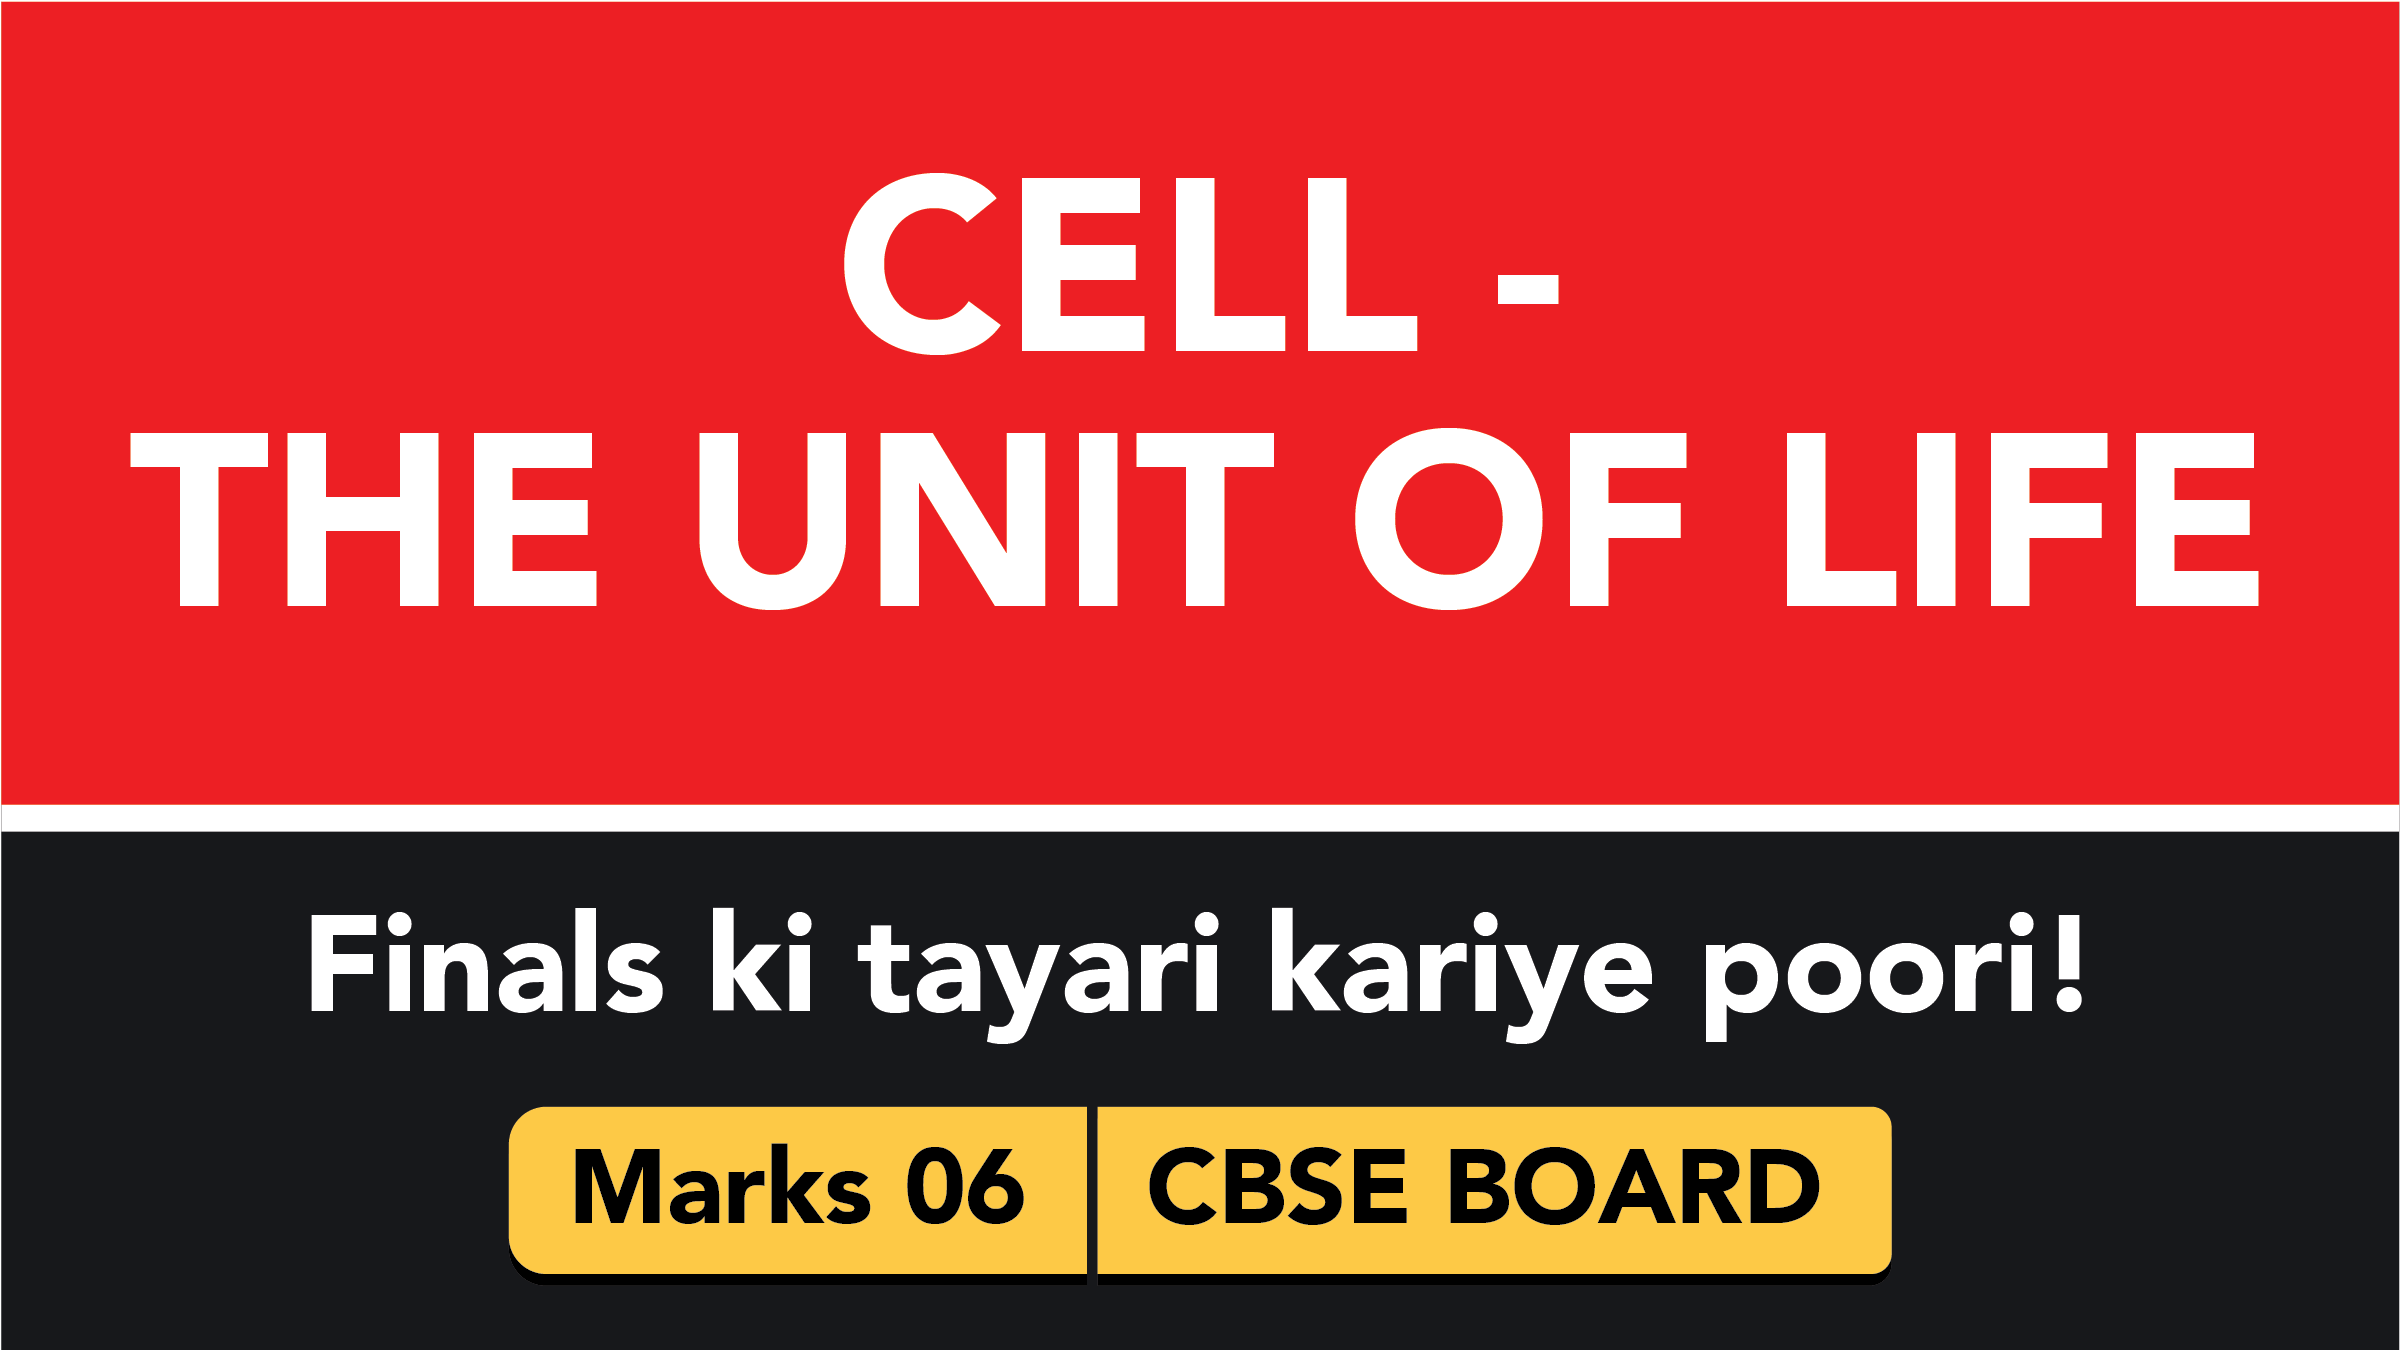 CBSE Board Class 11 CELL : THE UNIT OF LIFE || Weightage and Important Topics